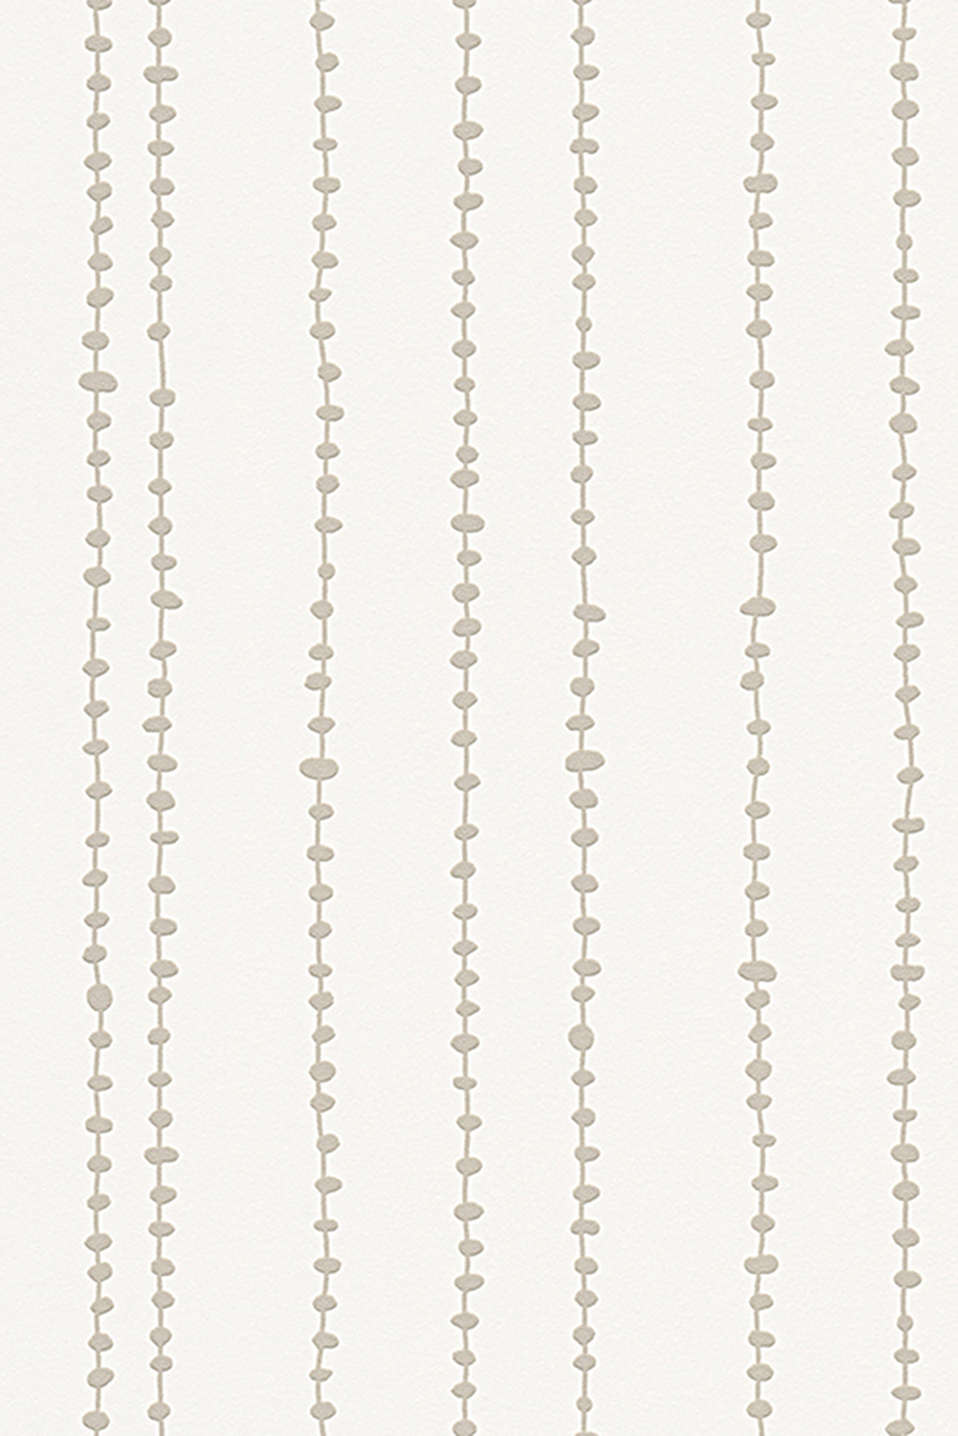 Esprit - Vlies wallpaper Artisan Fall Striped